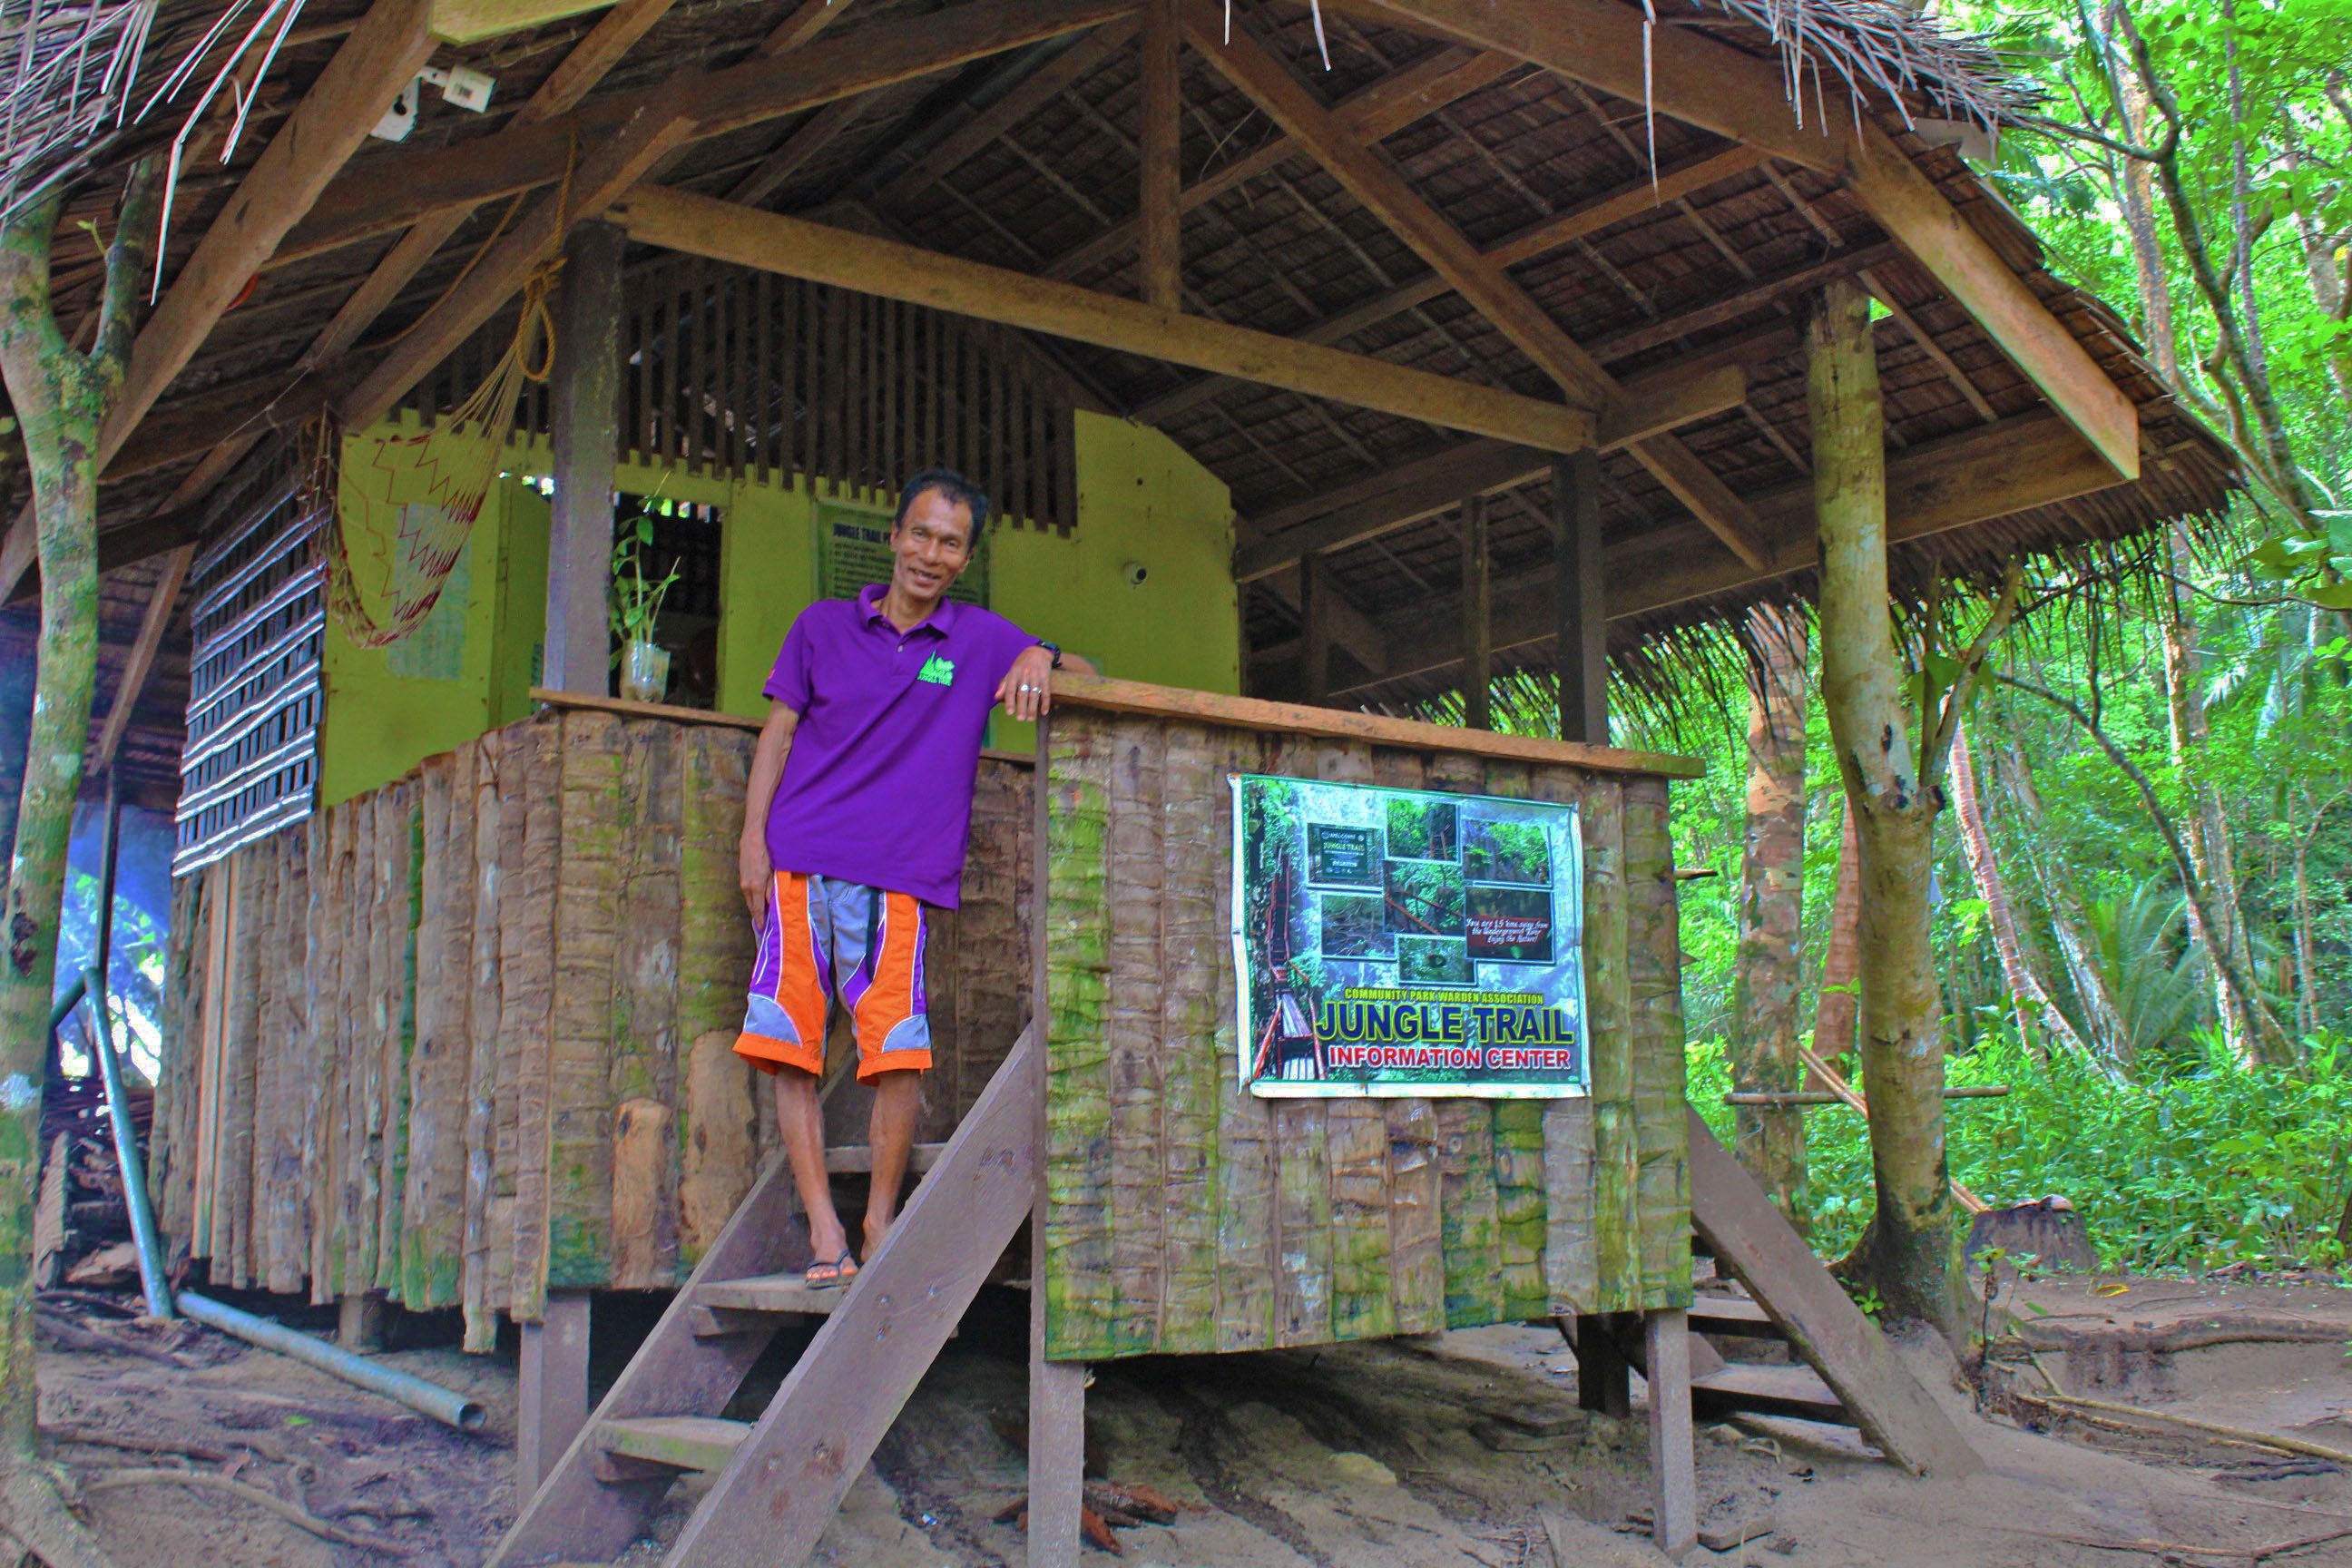 INFORMATION CENTER. A Tagbanua community park warden greets visitors with a smile as they pass by the Jungle Trailu00e2u0080u0099s information center at trailhead. Photo by Keith Anthony Fabro